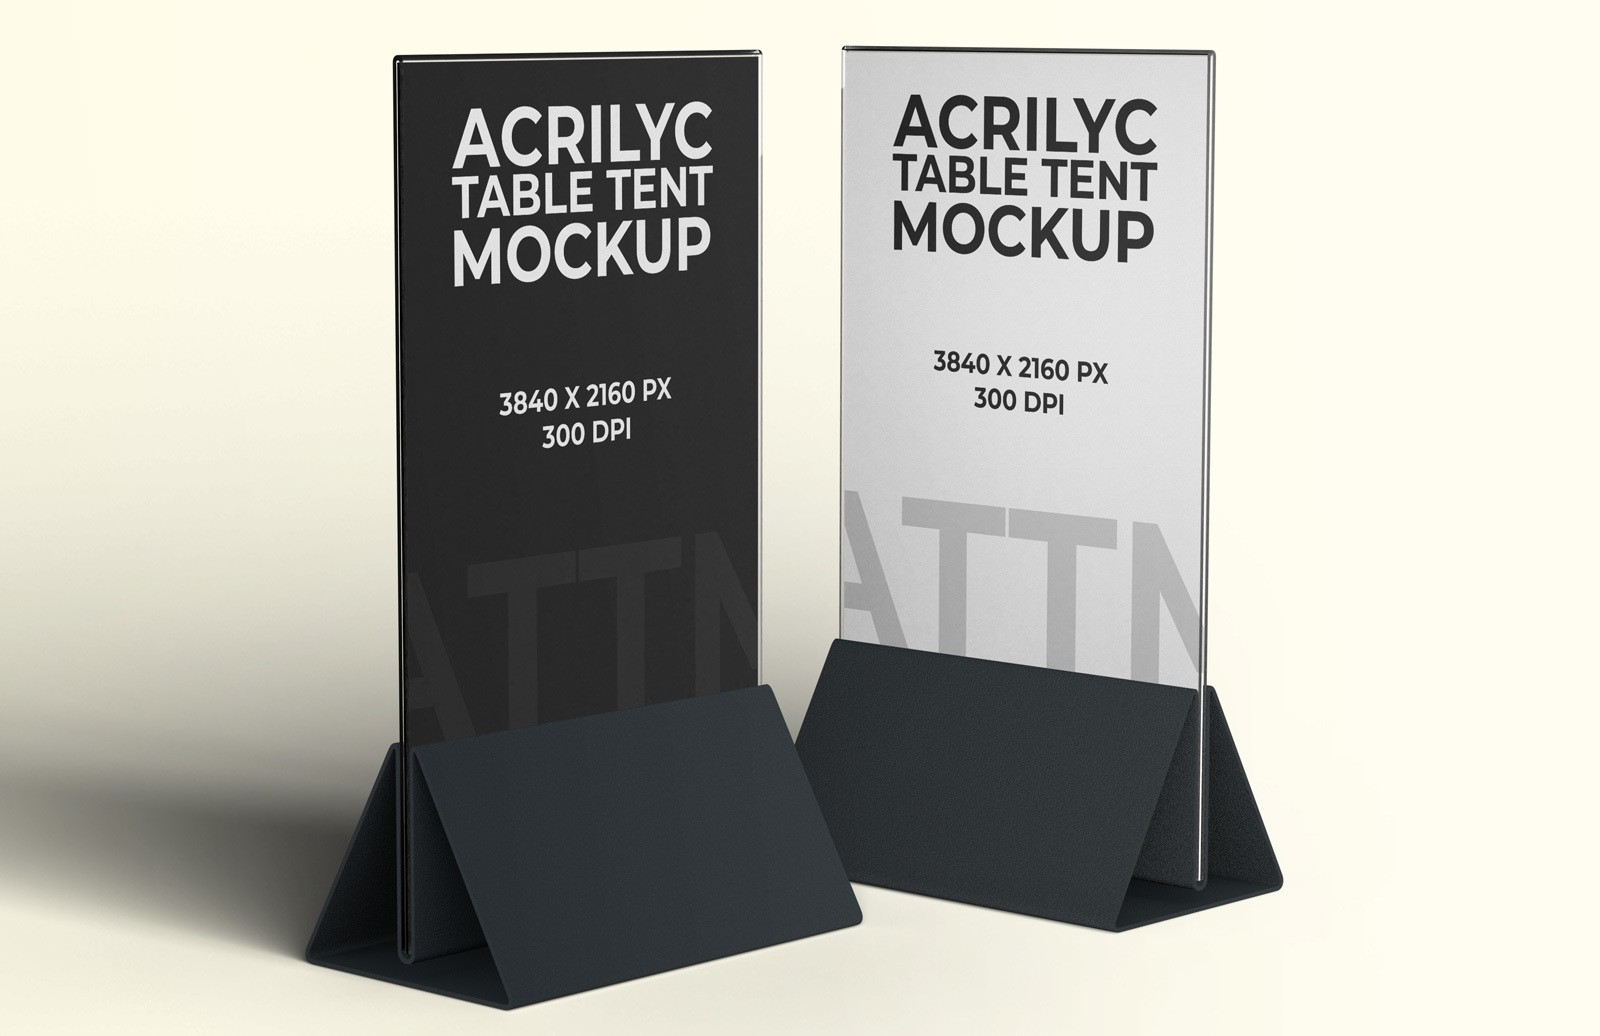 Acrilyc Table Tent Mockup Preview 1